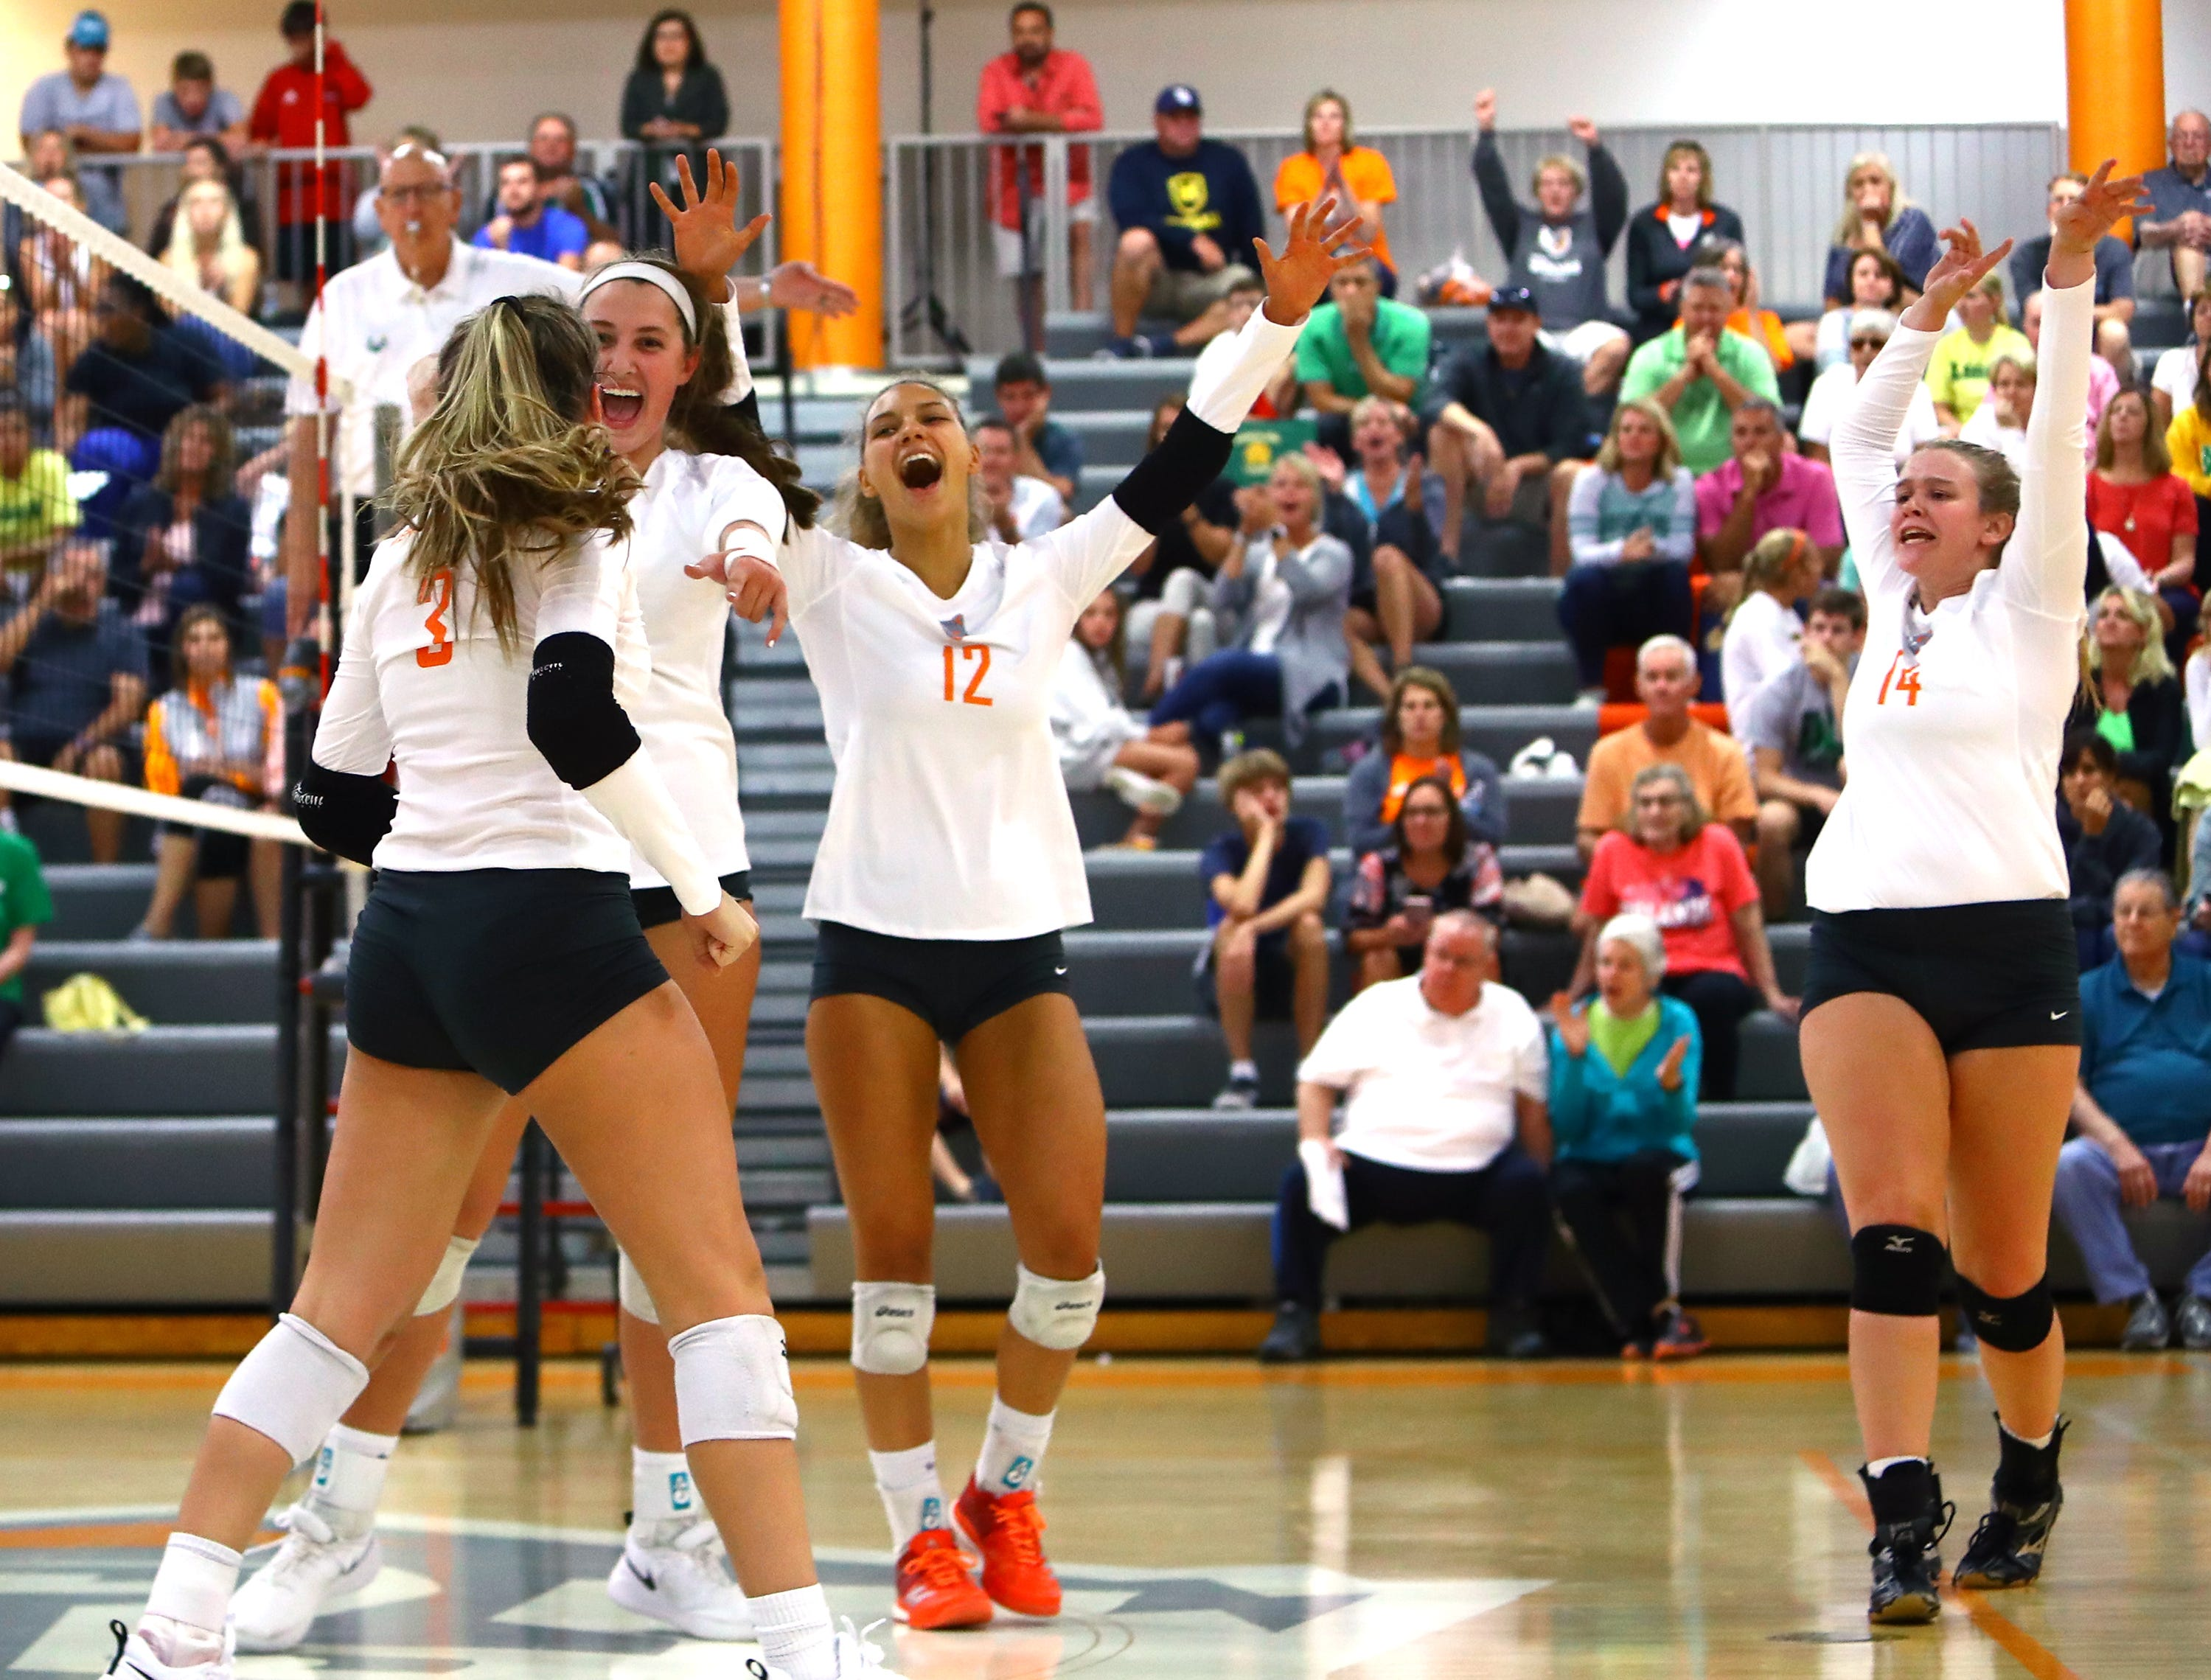 Mercy-McAuley team members celebrate after winning the second game against No. 1 ranked Ursuline at Mercy-McAuley High School.